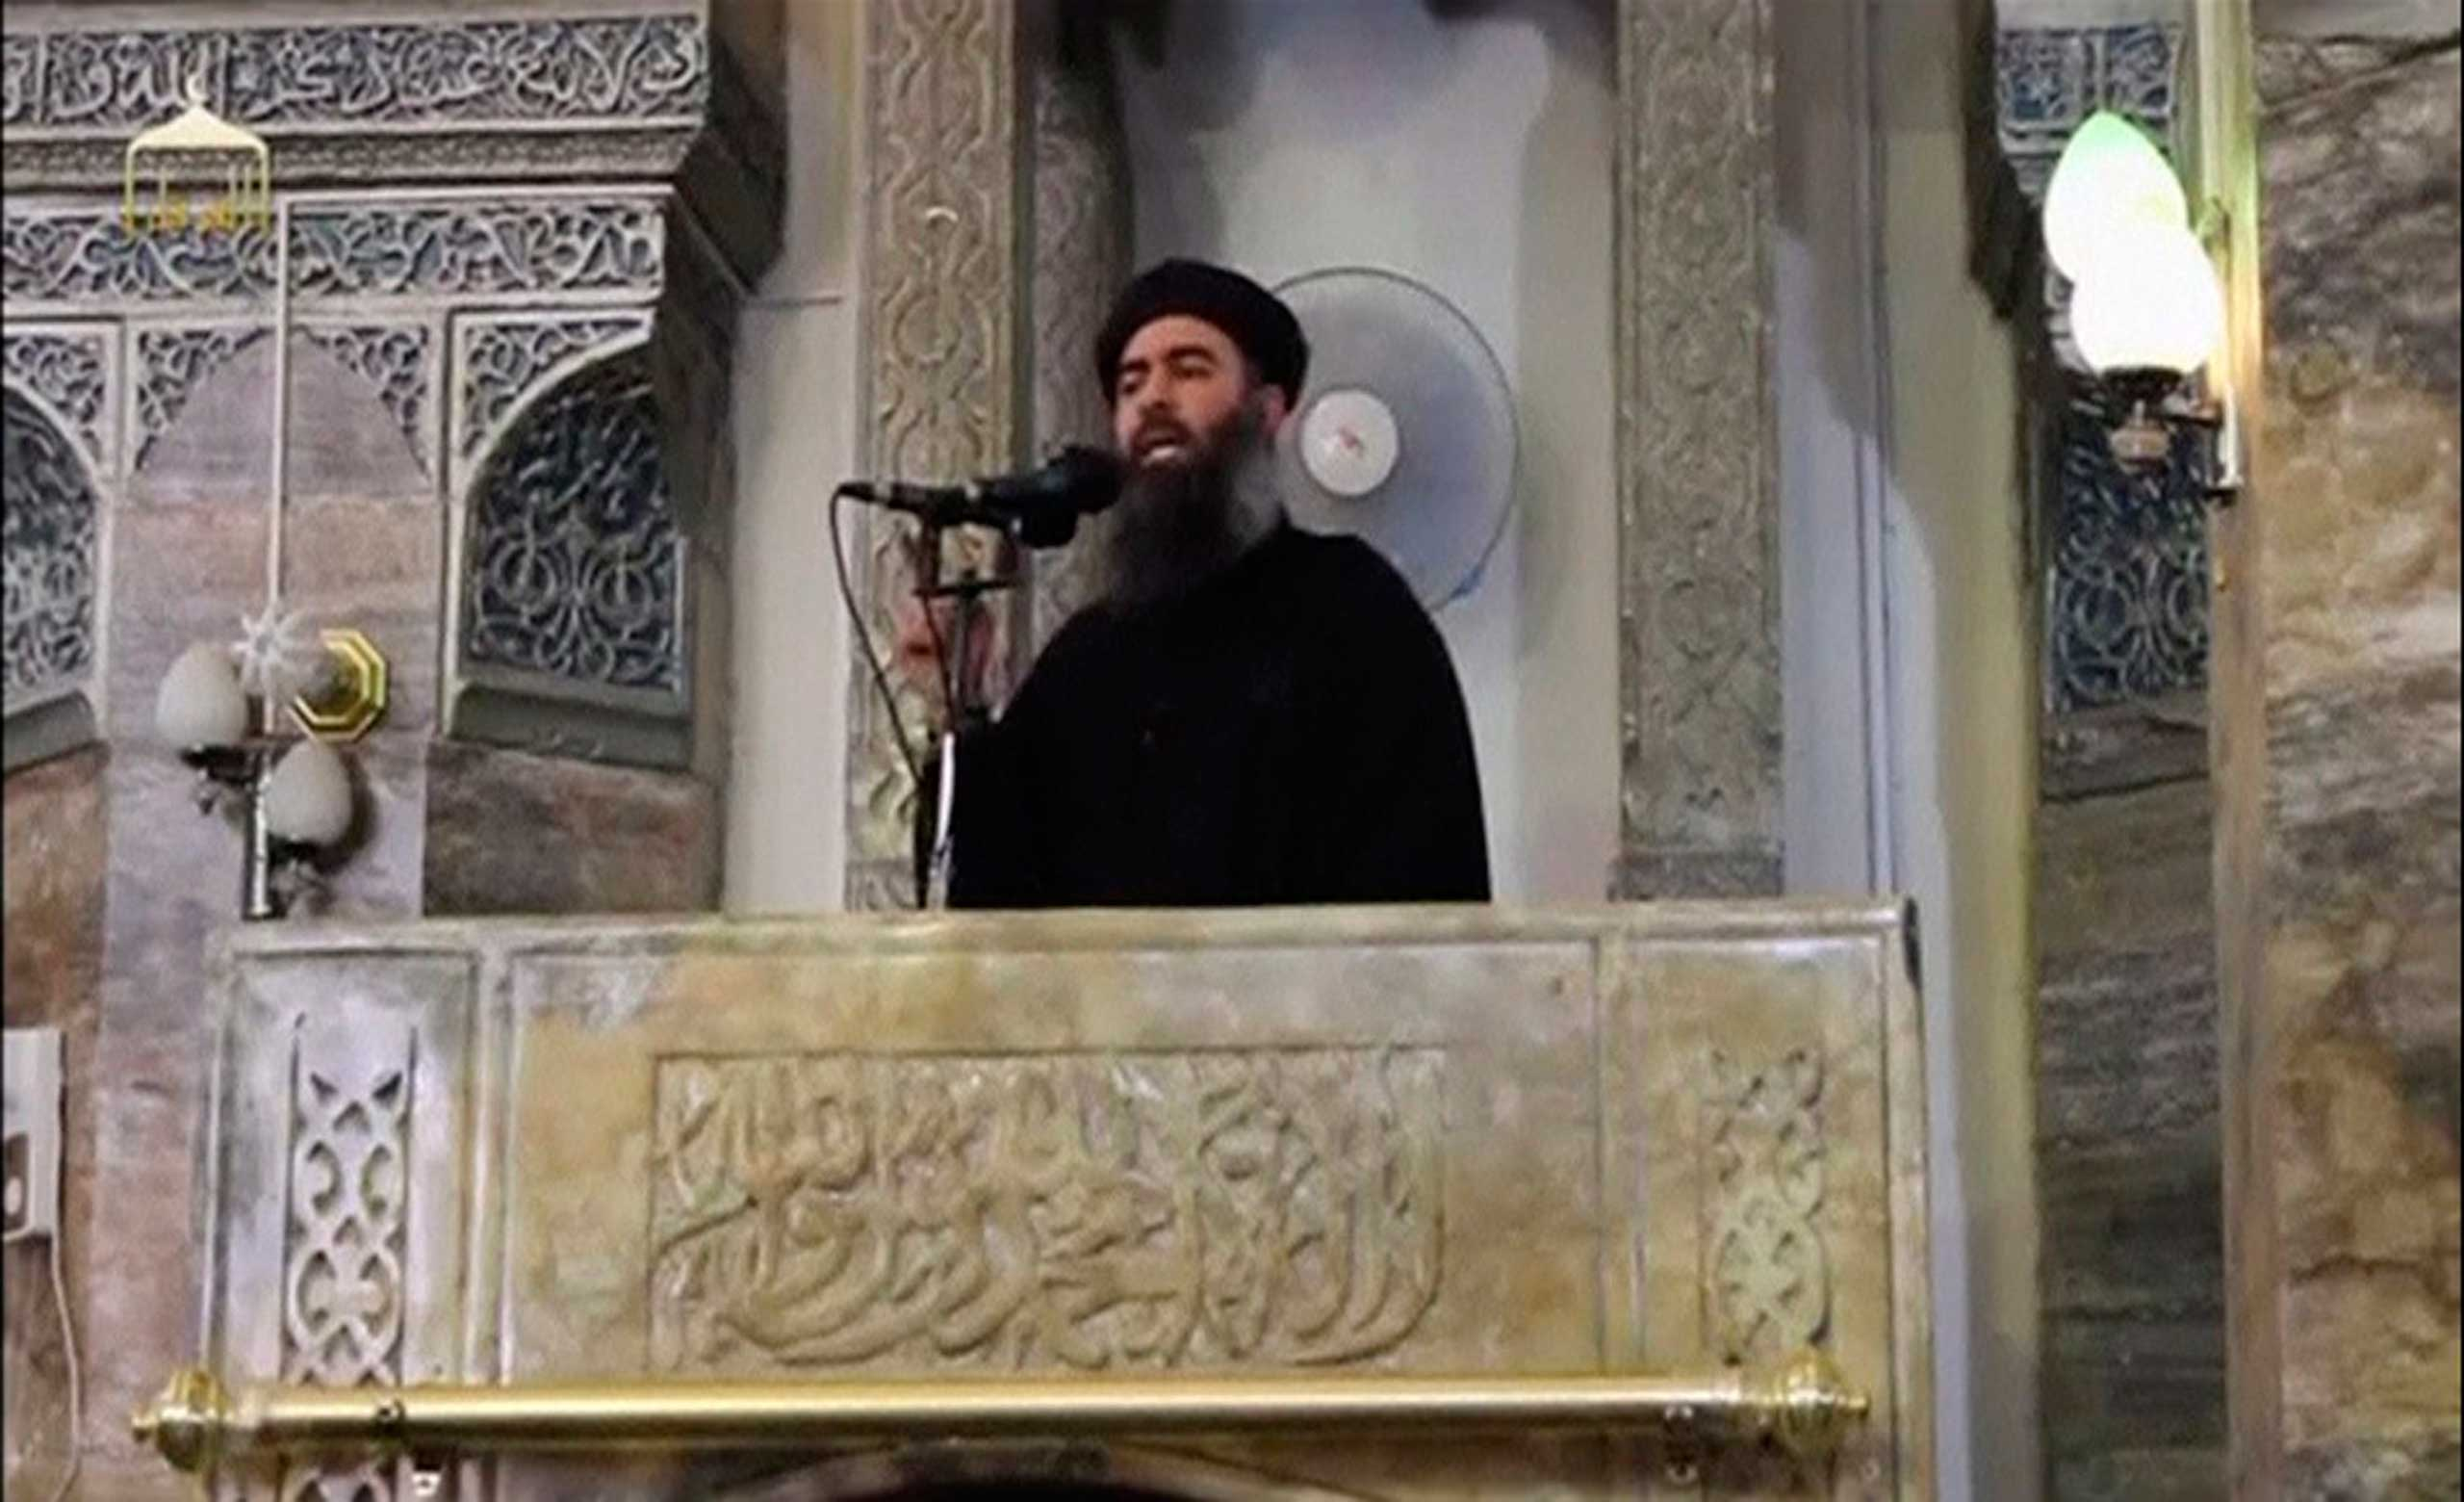 <b>$10 million: Abu Du'a a.k.a. Abu Bakr al-Baghdadi</b>                                   Abu Du'a is the leader of the militant Islamist group ISIS. ISIS is considered too extreme even by al-Qaeda, which disavowed the group in 2014. Recently, ISIS has seized Mosul and other major Iraqi cities, threatening the country's security and sparking global panic.